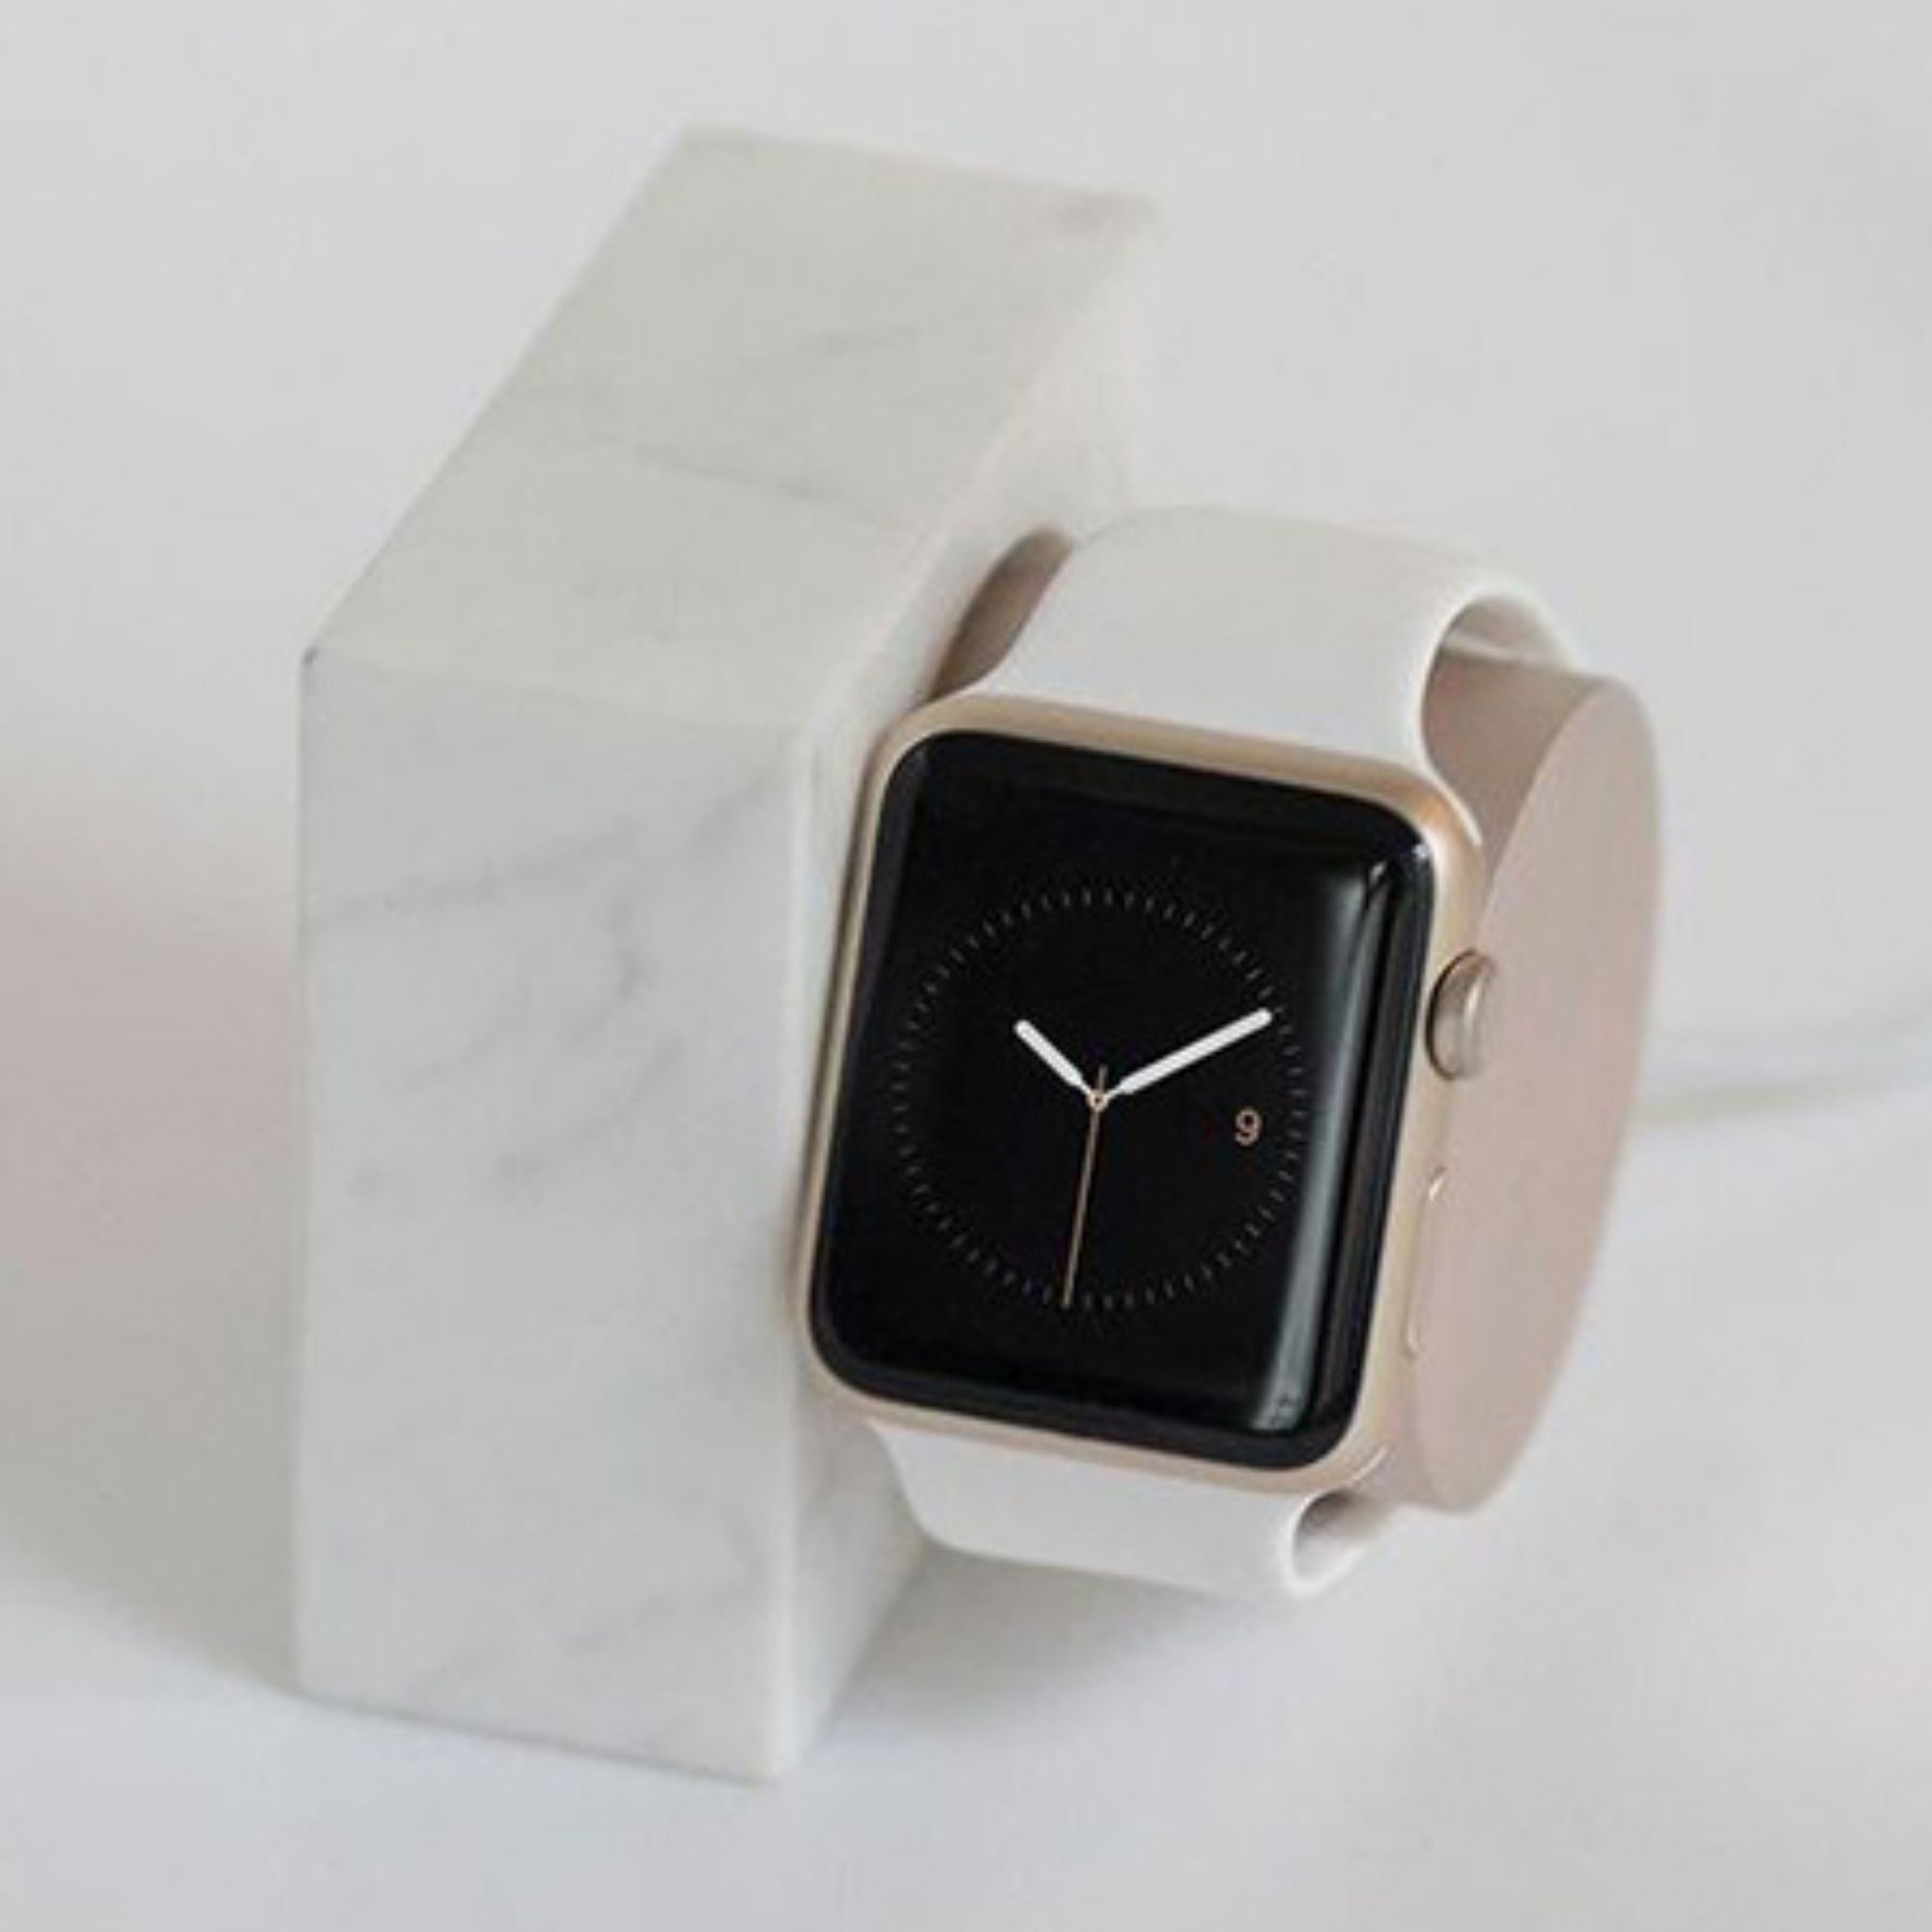 Apple watch and straps on marble block